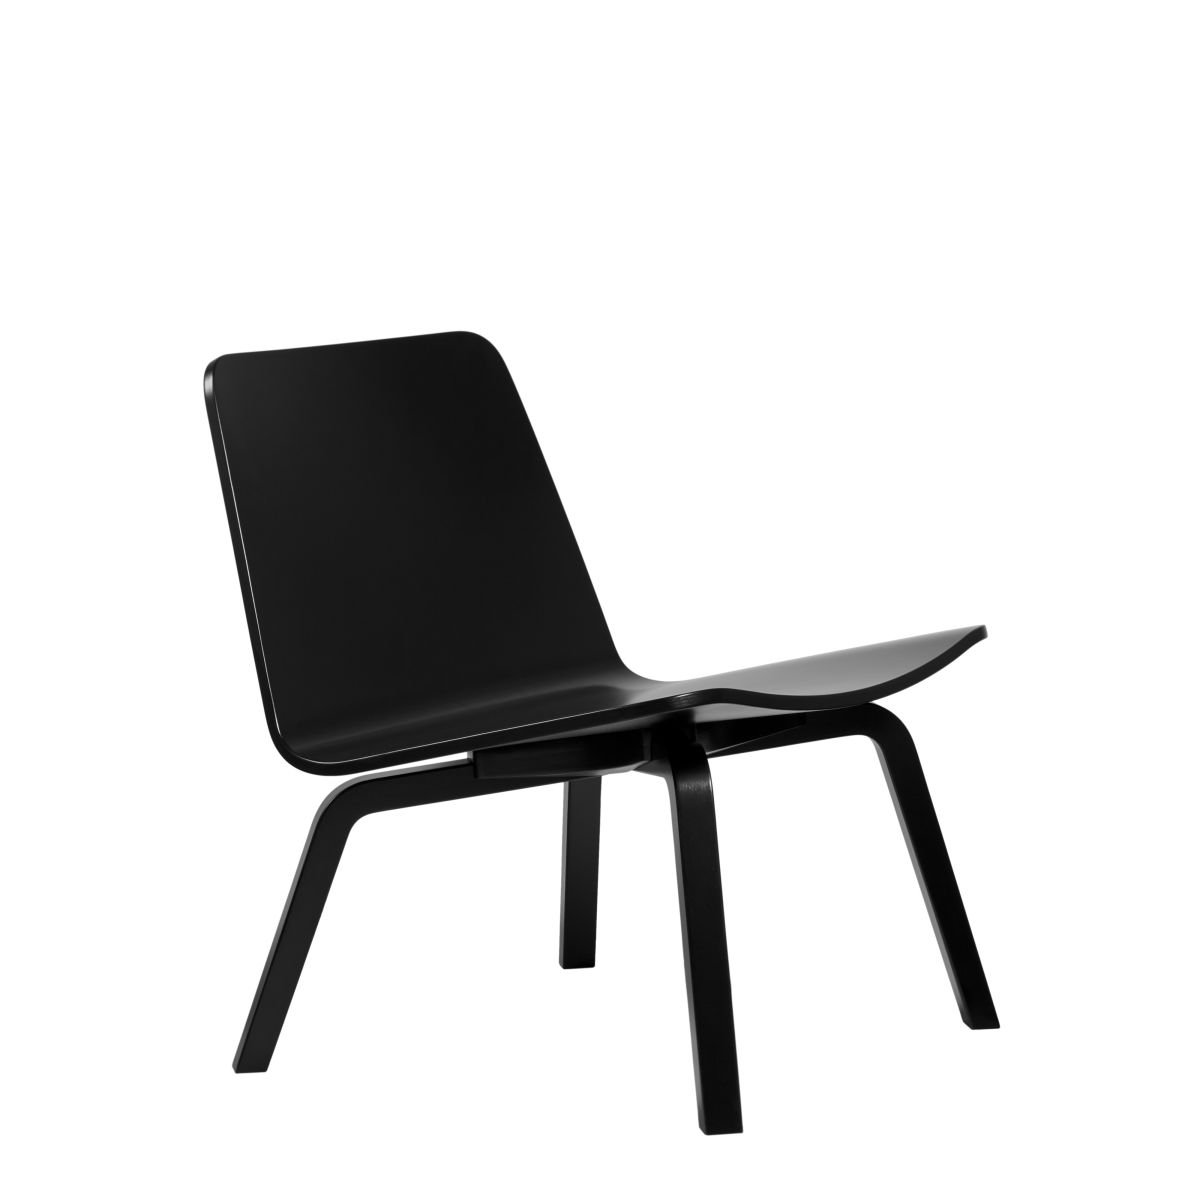 Lounge-Chair-Hk002-Black-Lacquer_Web-1977278